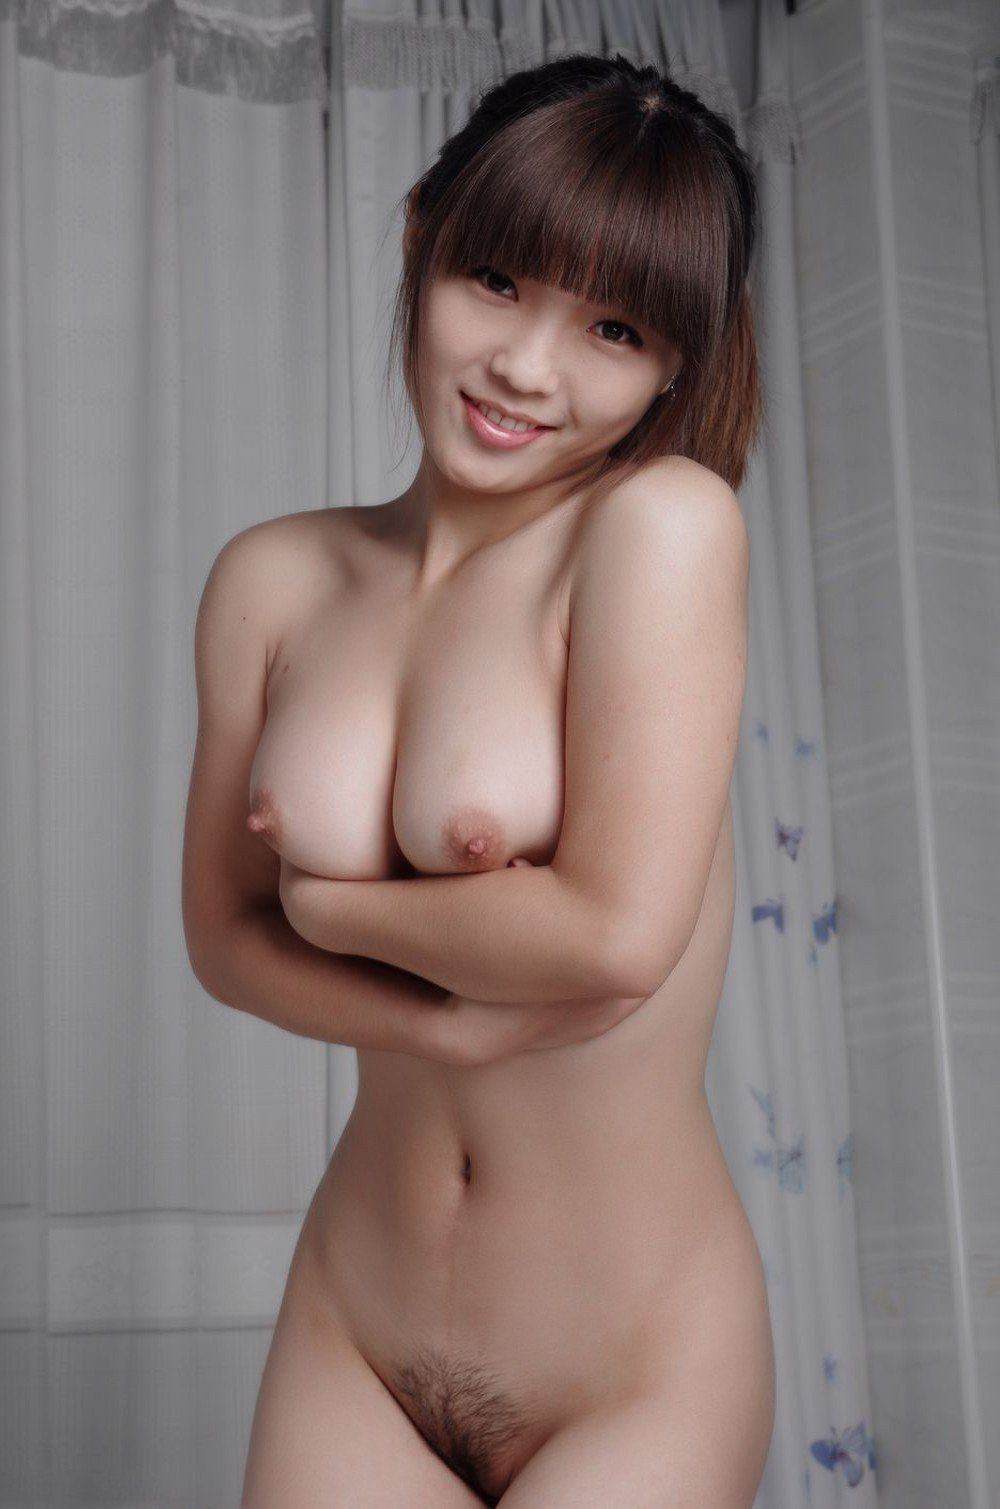 QB reccomend Asian model nude young